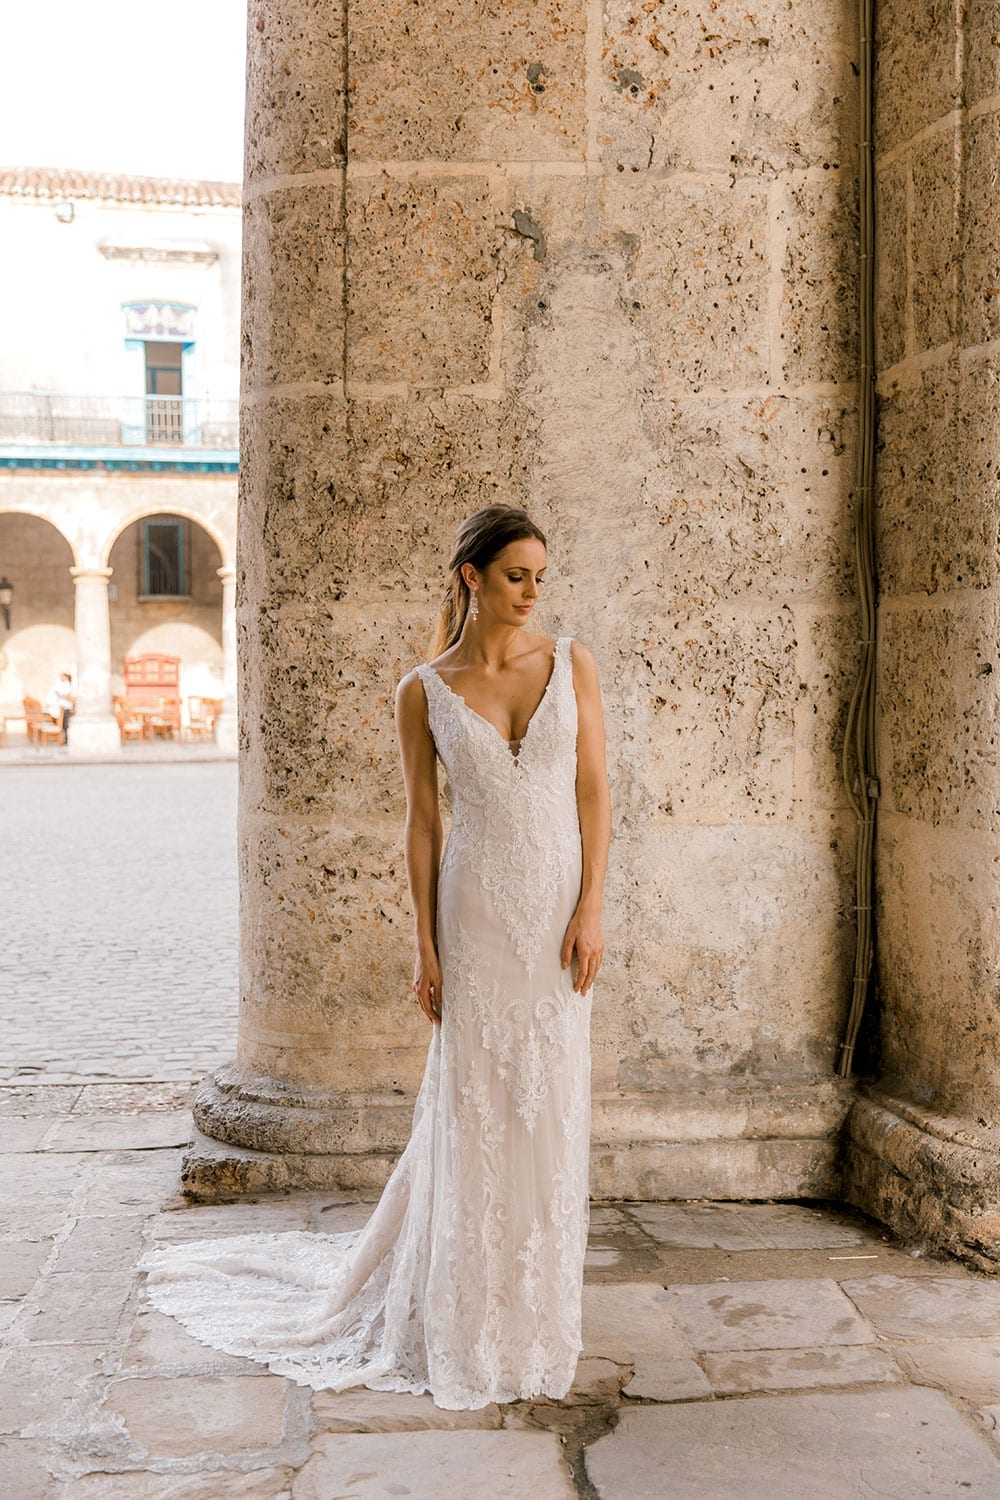 Model wearing Vinka Design Olivia Wedding Dress Low Back V-Neck Beaded Lace Wedding Gown in front of washed out stone column in Cuba square